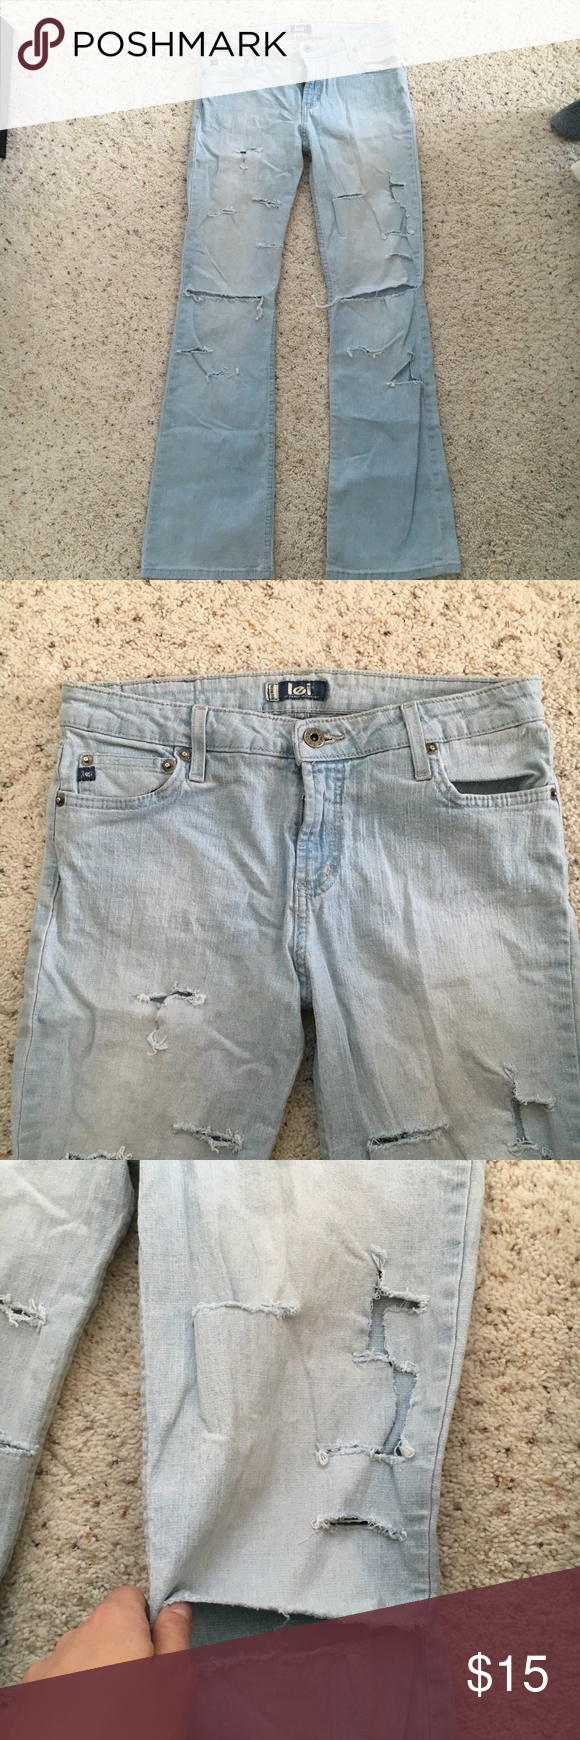 Lei Jeans Ripped Destroyed Light wash flare Pair of low rise l.e.i. Jeans in a super light wash. Flare, low rise, quite a bit of stretch. It true to size. Large rips on the knees and other fashion rips all over. Distressing and rips only on the front of the jeans. Worn a fair amount, I grew out of them so there is life left in these! L.e.i.. Jeans Flare & Wide Leg